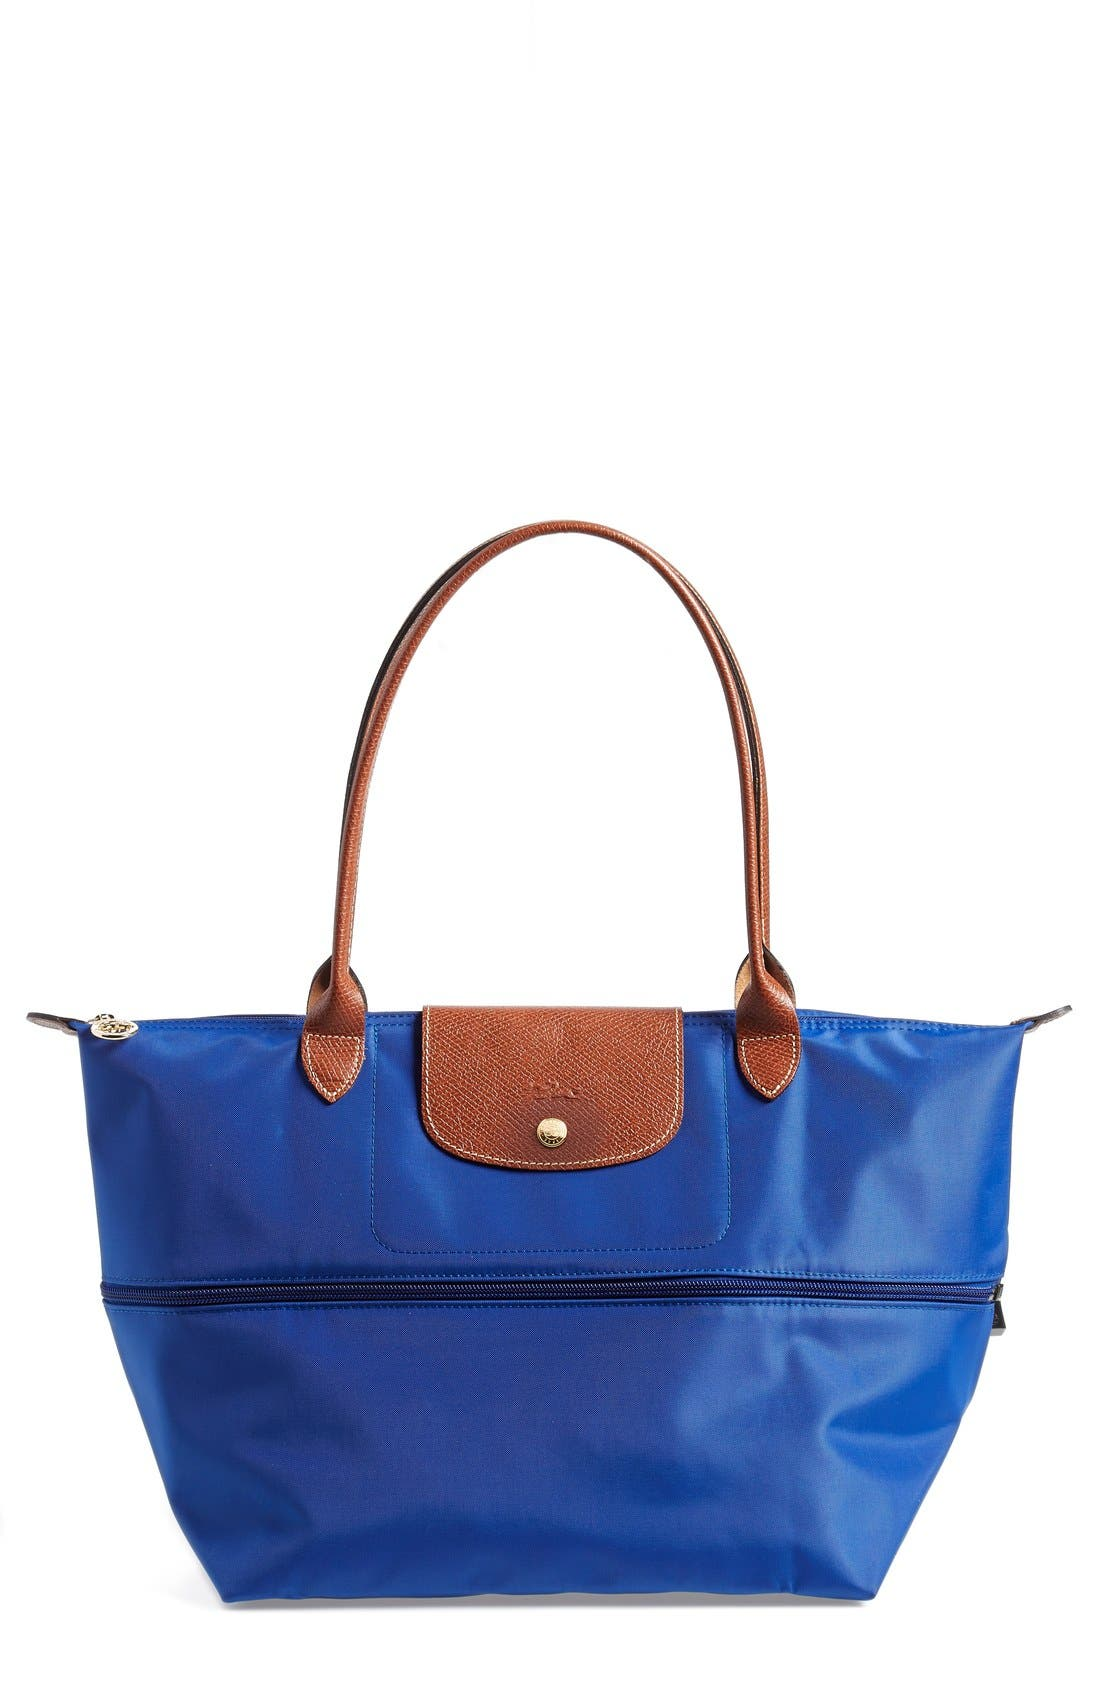 Main Image - Longchamp 'Le Pliage' Expandable Tote (Nordstrom Exclusive)